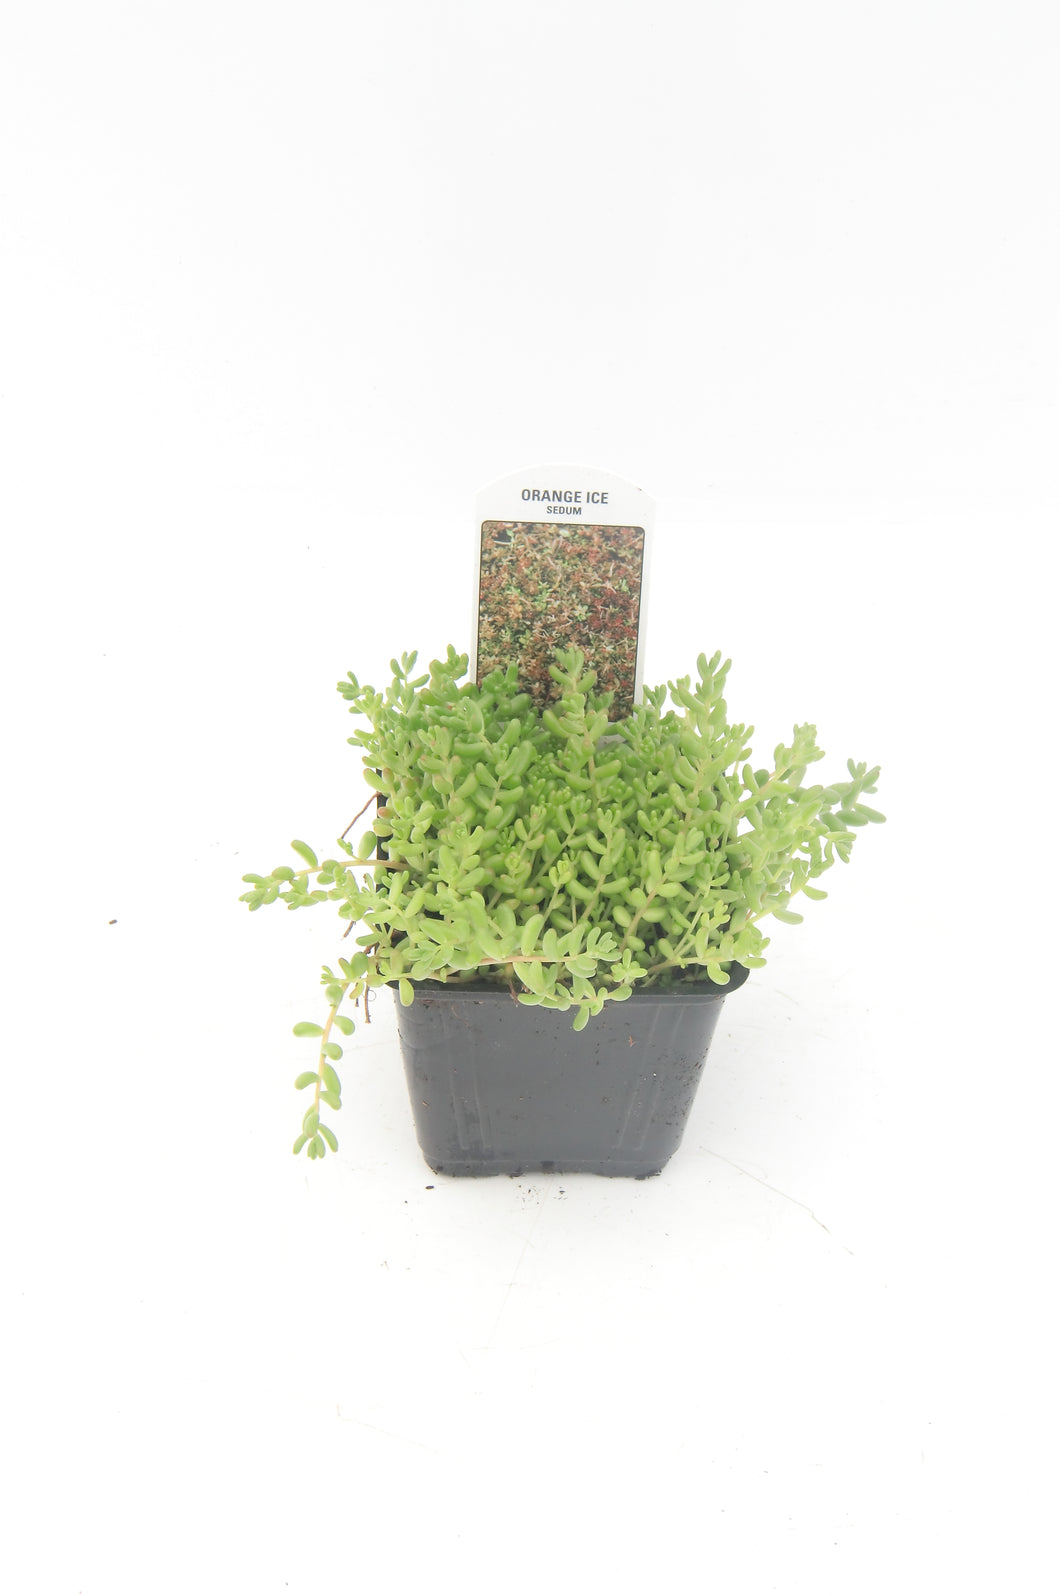 Ground Cover - Sedum album 'Orange Ice' (4 Inch)